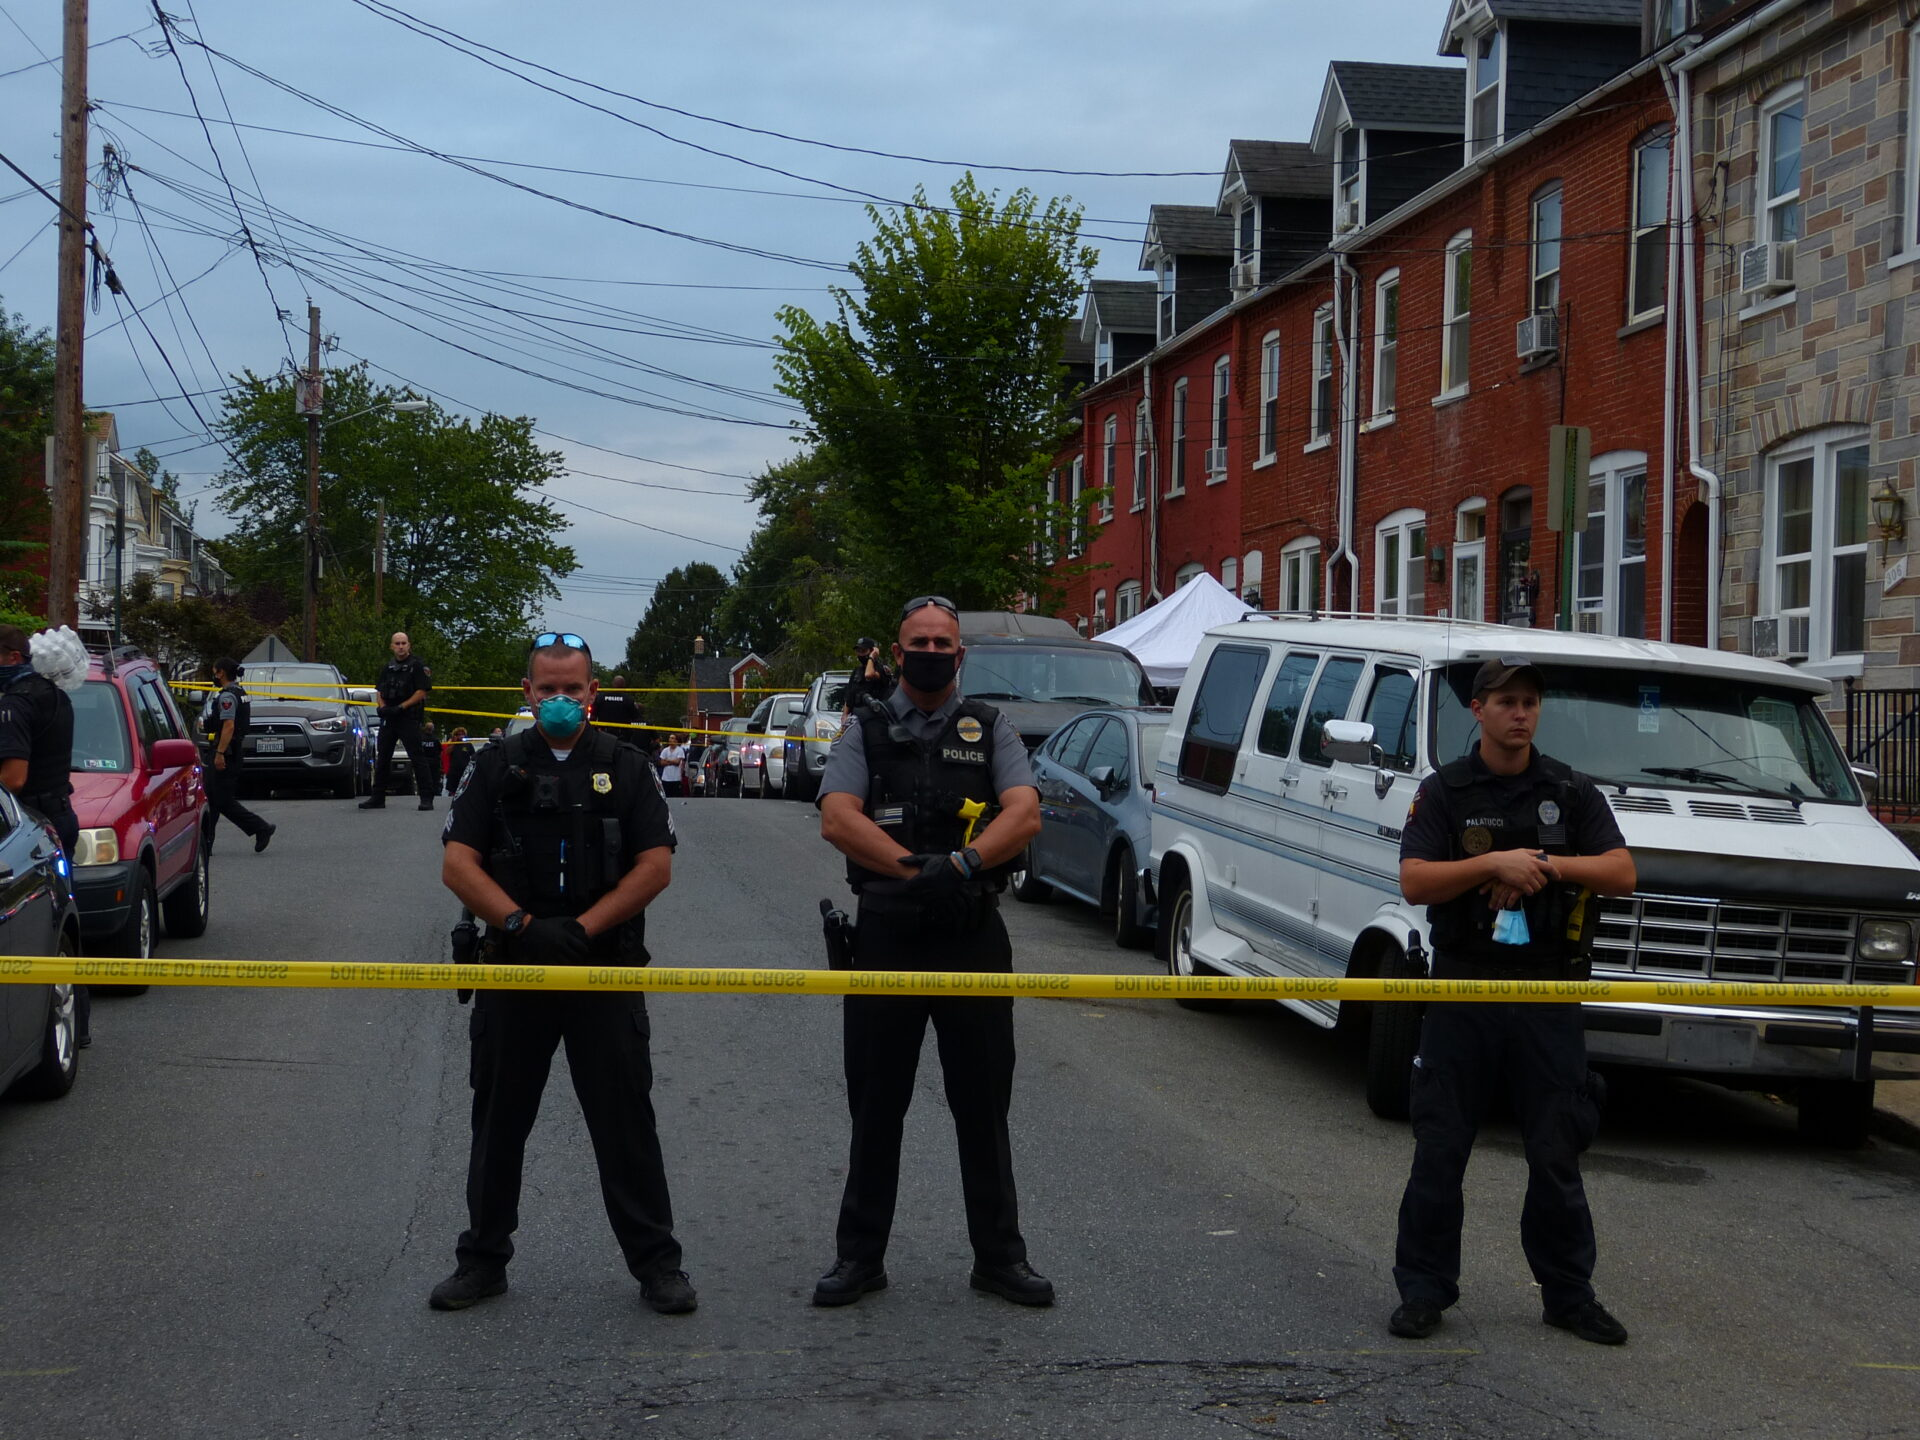 Police stand guard at the scene of an officer-involved shooting in the 300 block of Laurel Street on Sunday, Sept. 13, 2020. (Photo: Tim Stuhldreher)